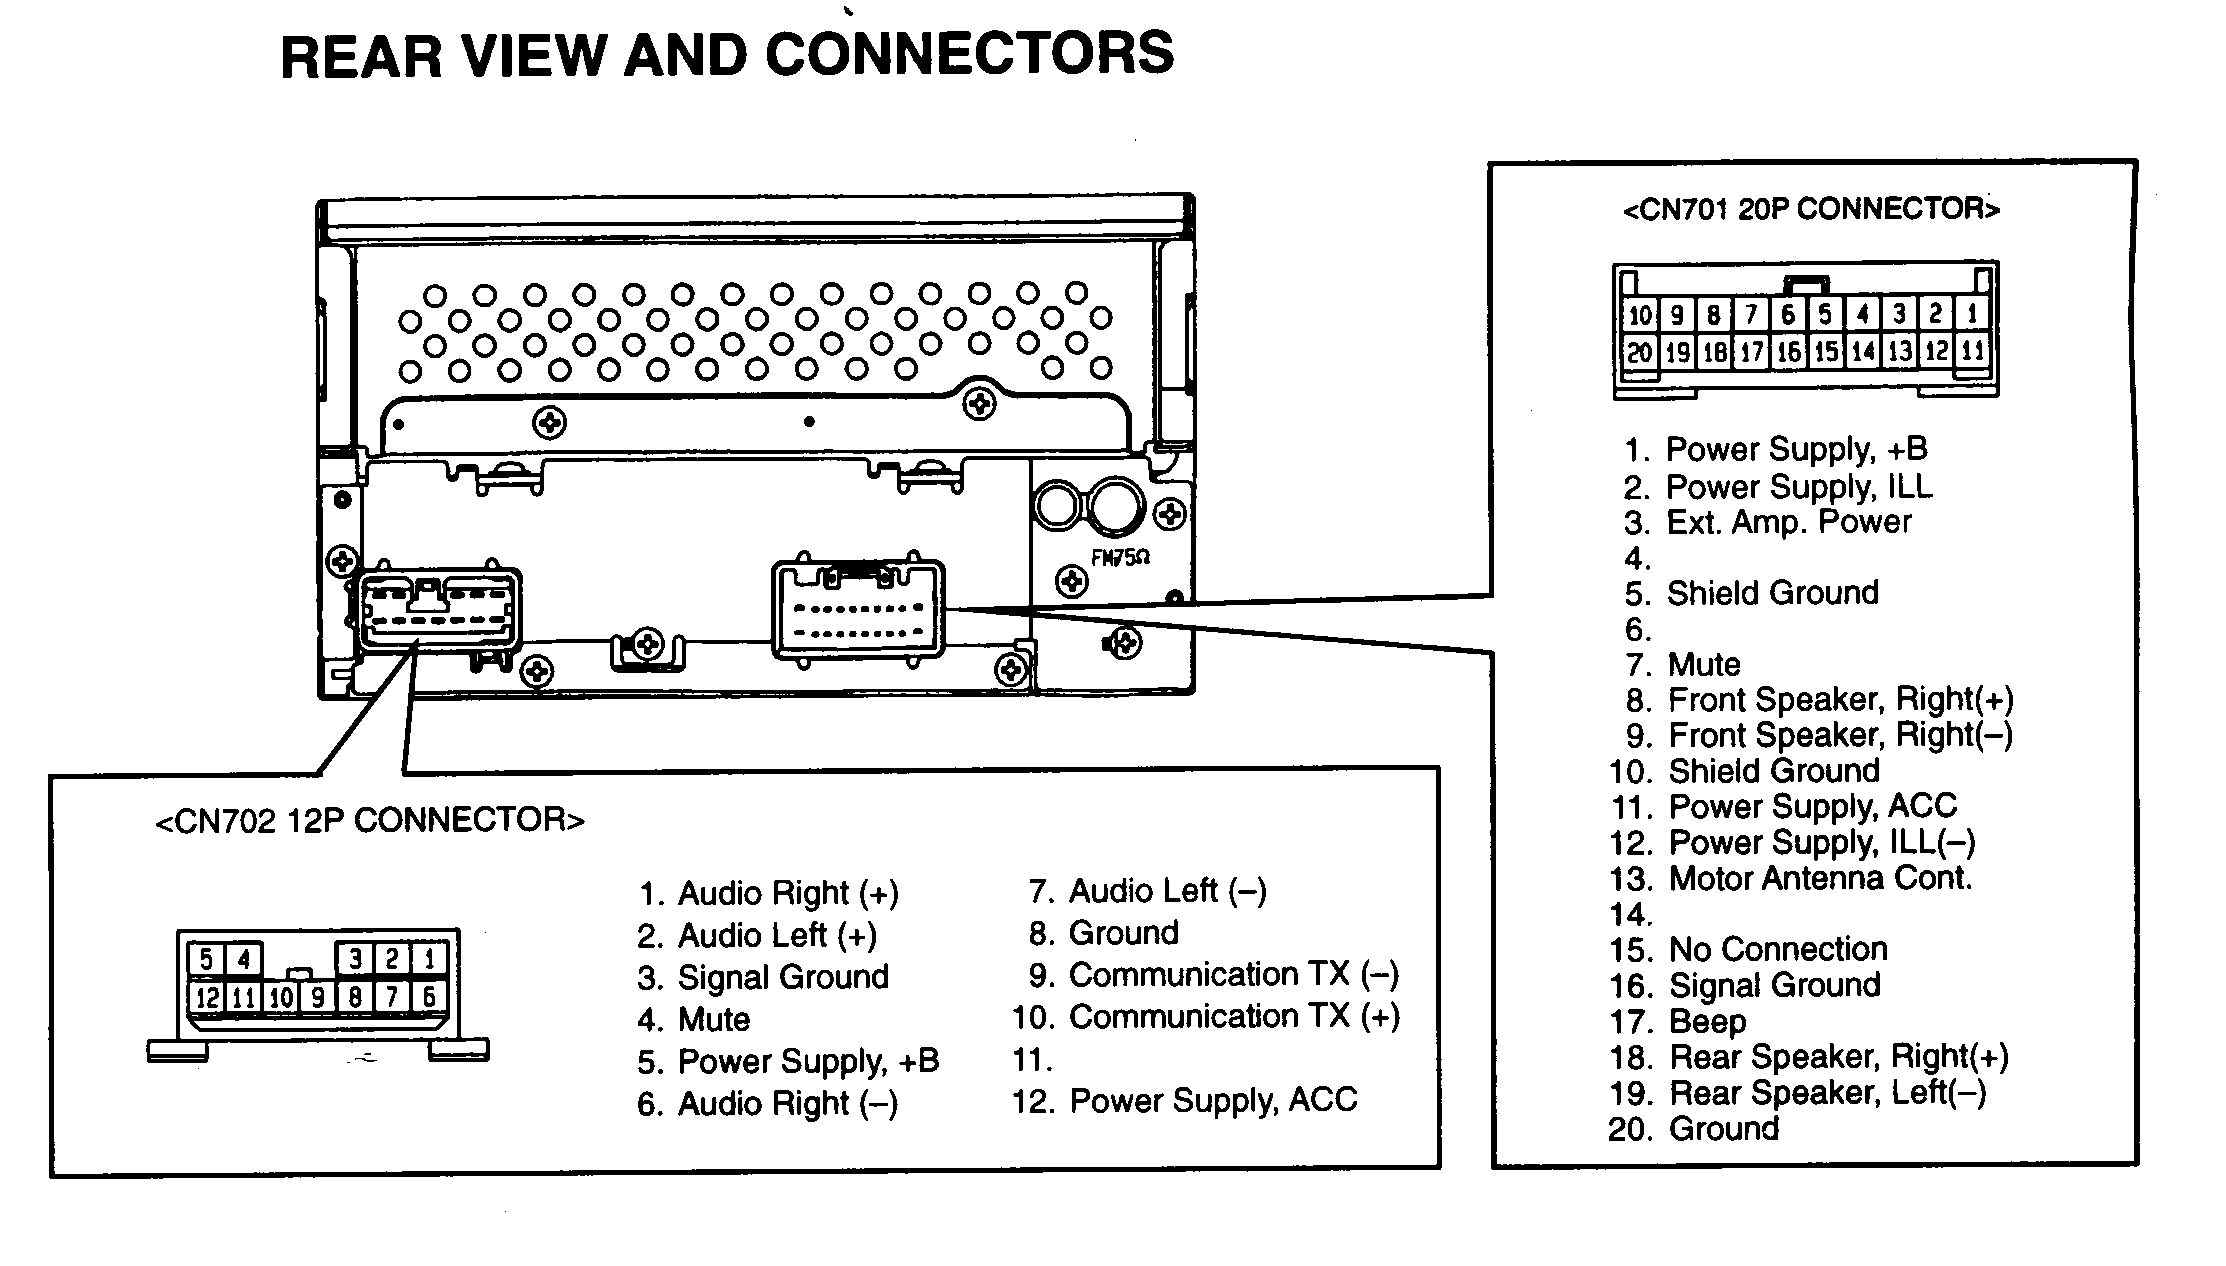 WireHarnessToyota03210201 nissan radio wiring diagram 1996 nissan radio wiring diagram 2005 Mercury Mountaineer Alternator Fuse at crackthecode.co